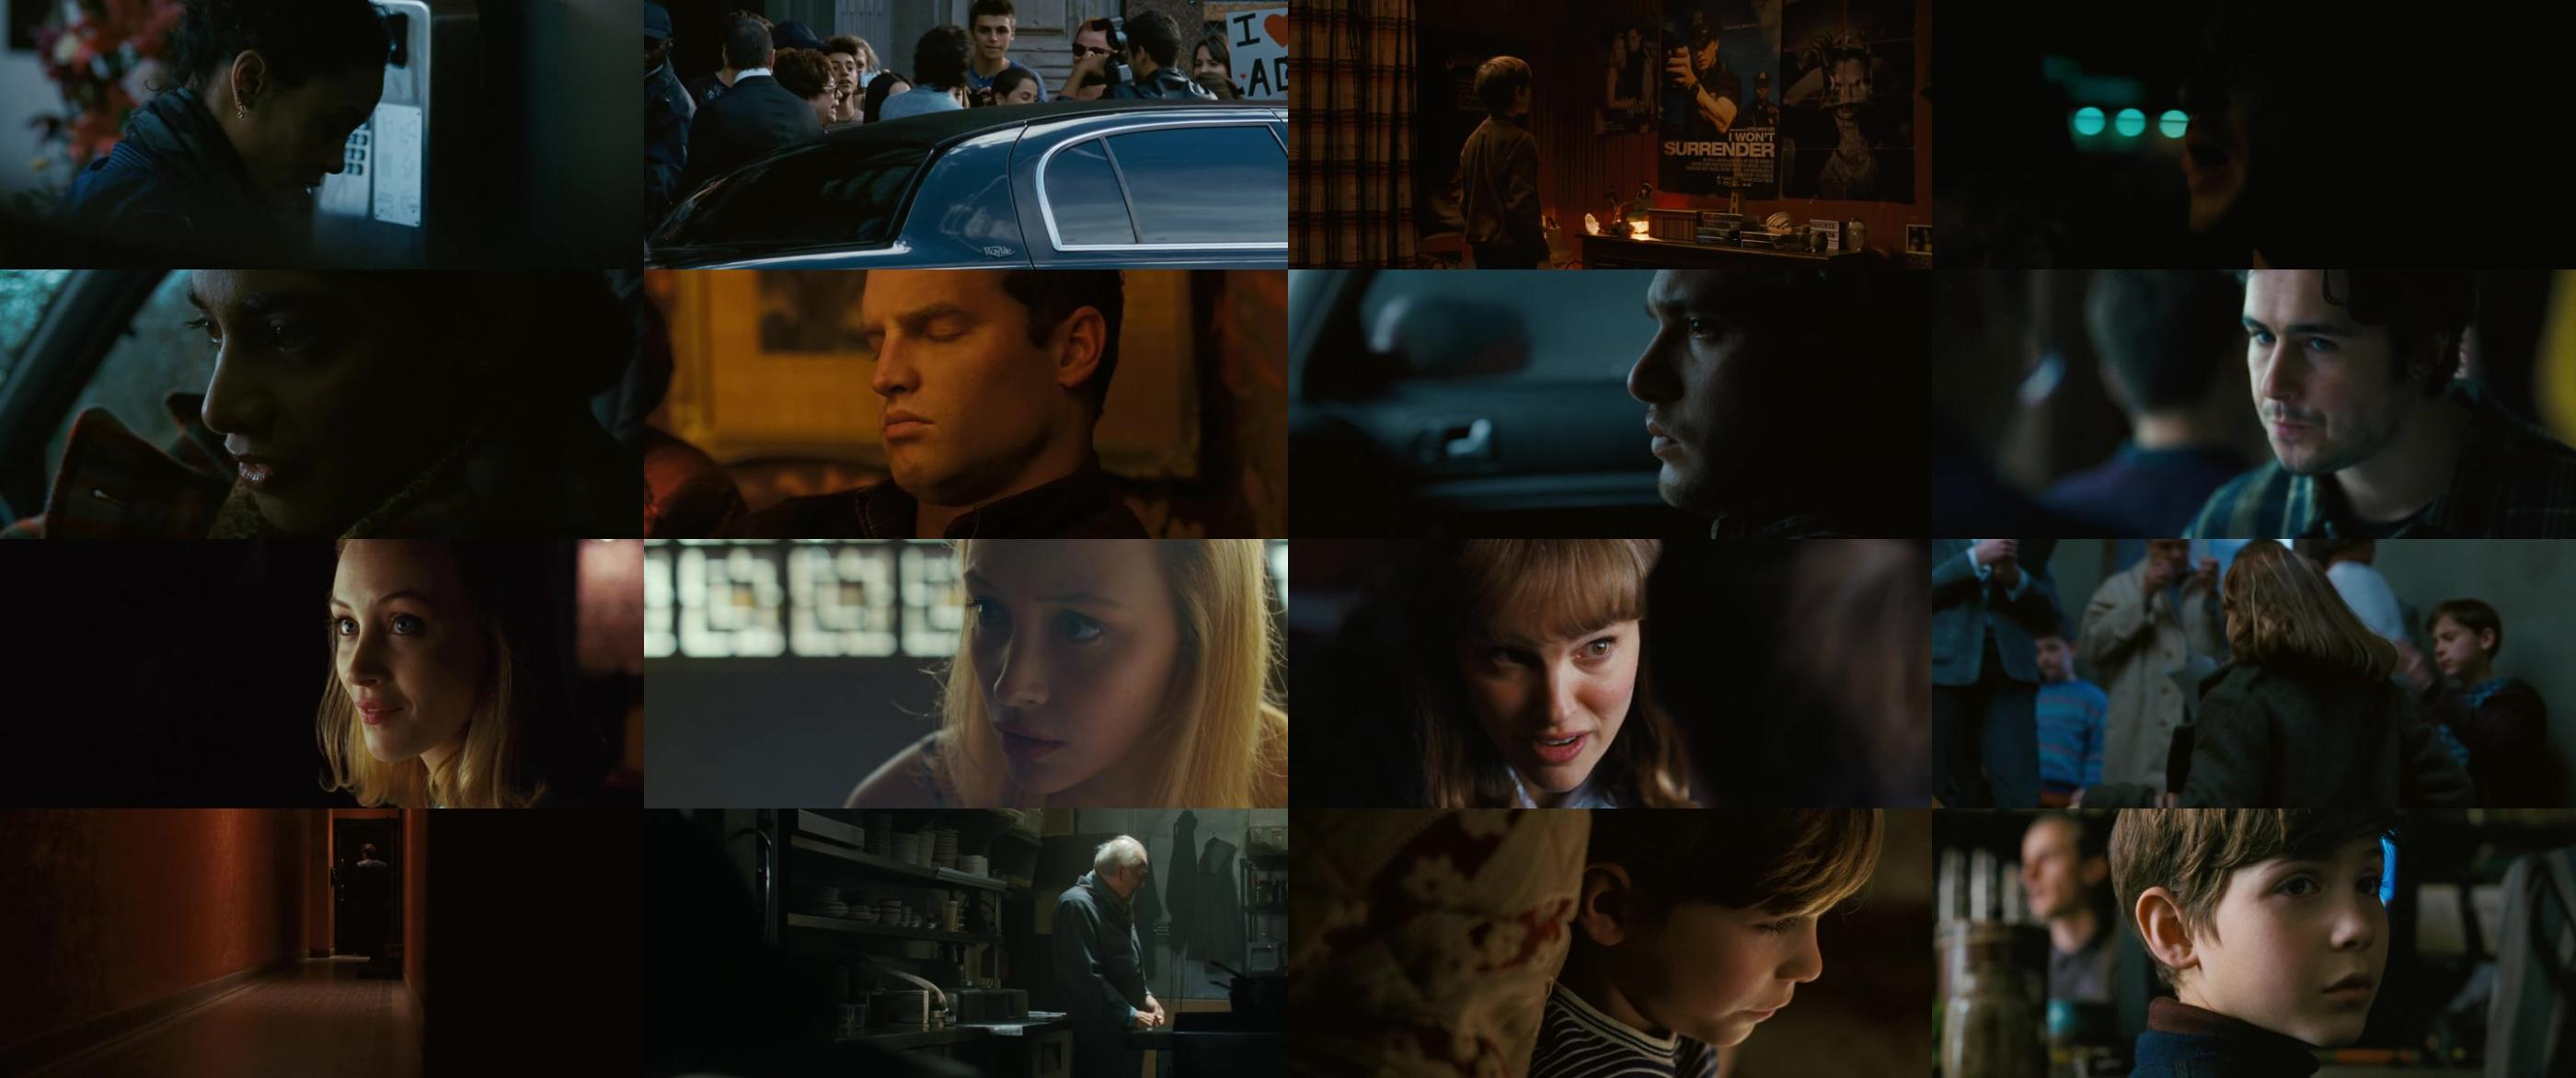 The Death And Life of John F Donovan 2018 WEB DL XviD AC3 FGT